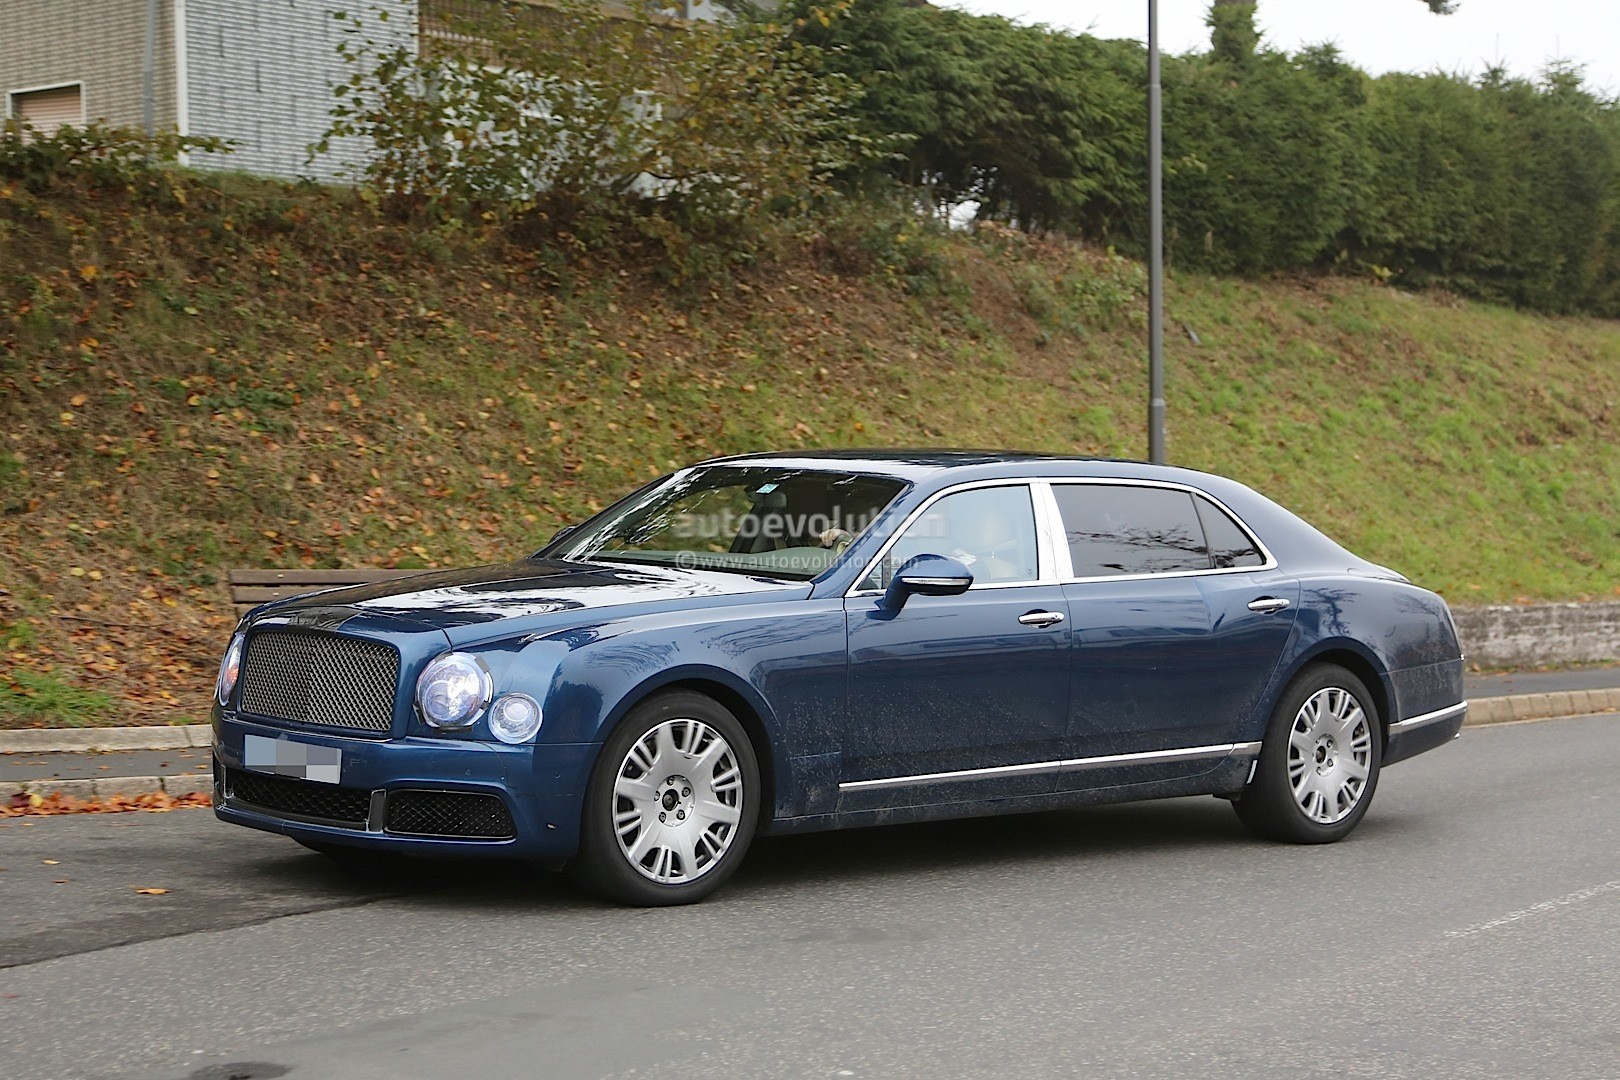 2017 Bentley Arnage photo - 2